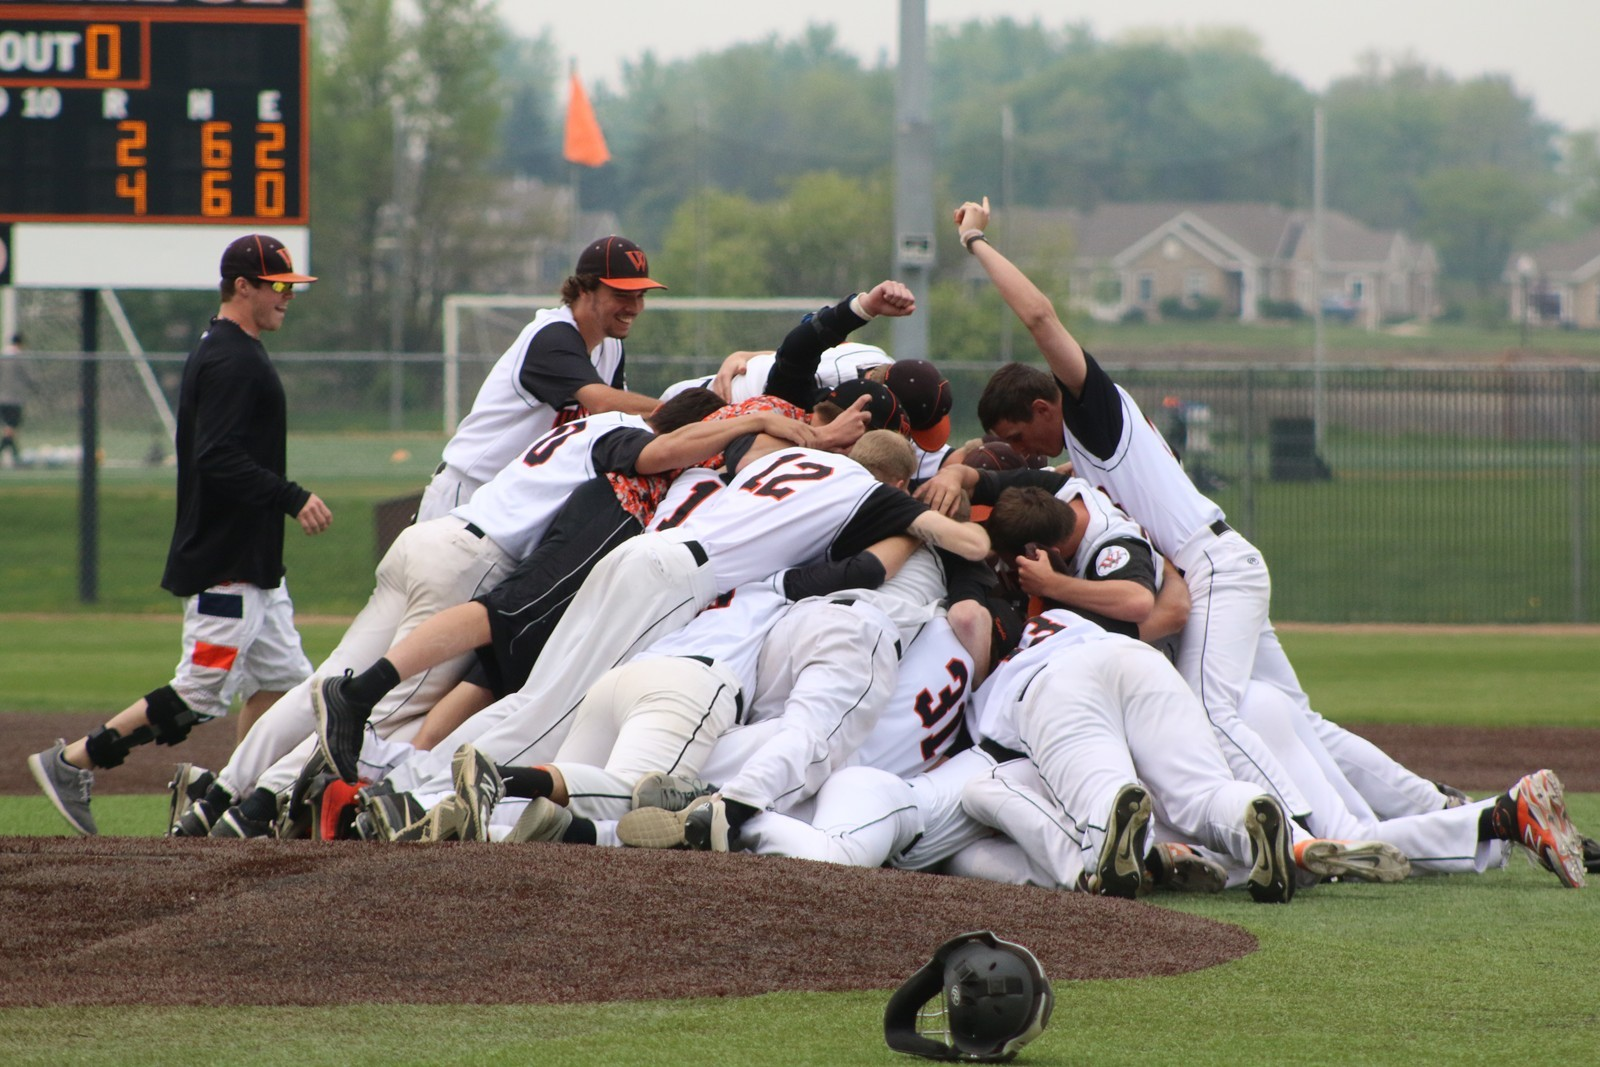 Wartburg sports photo - 7